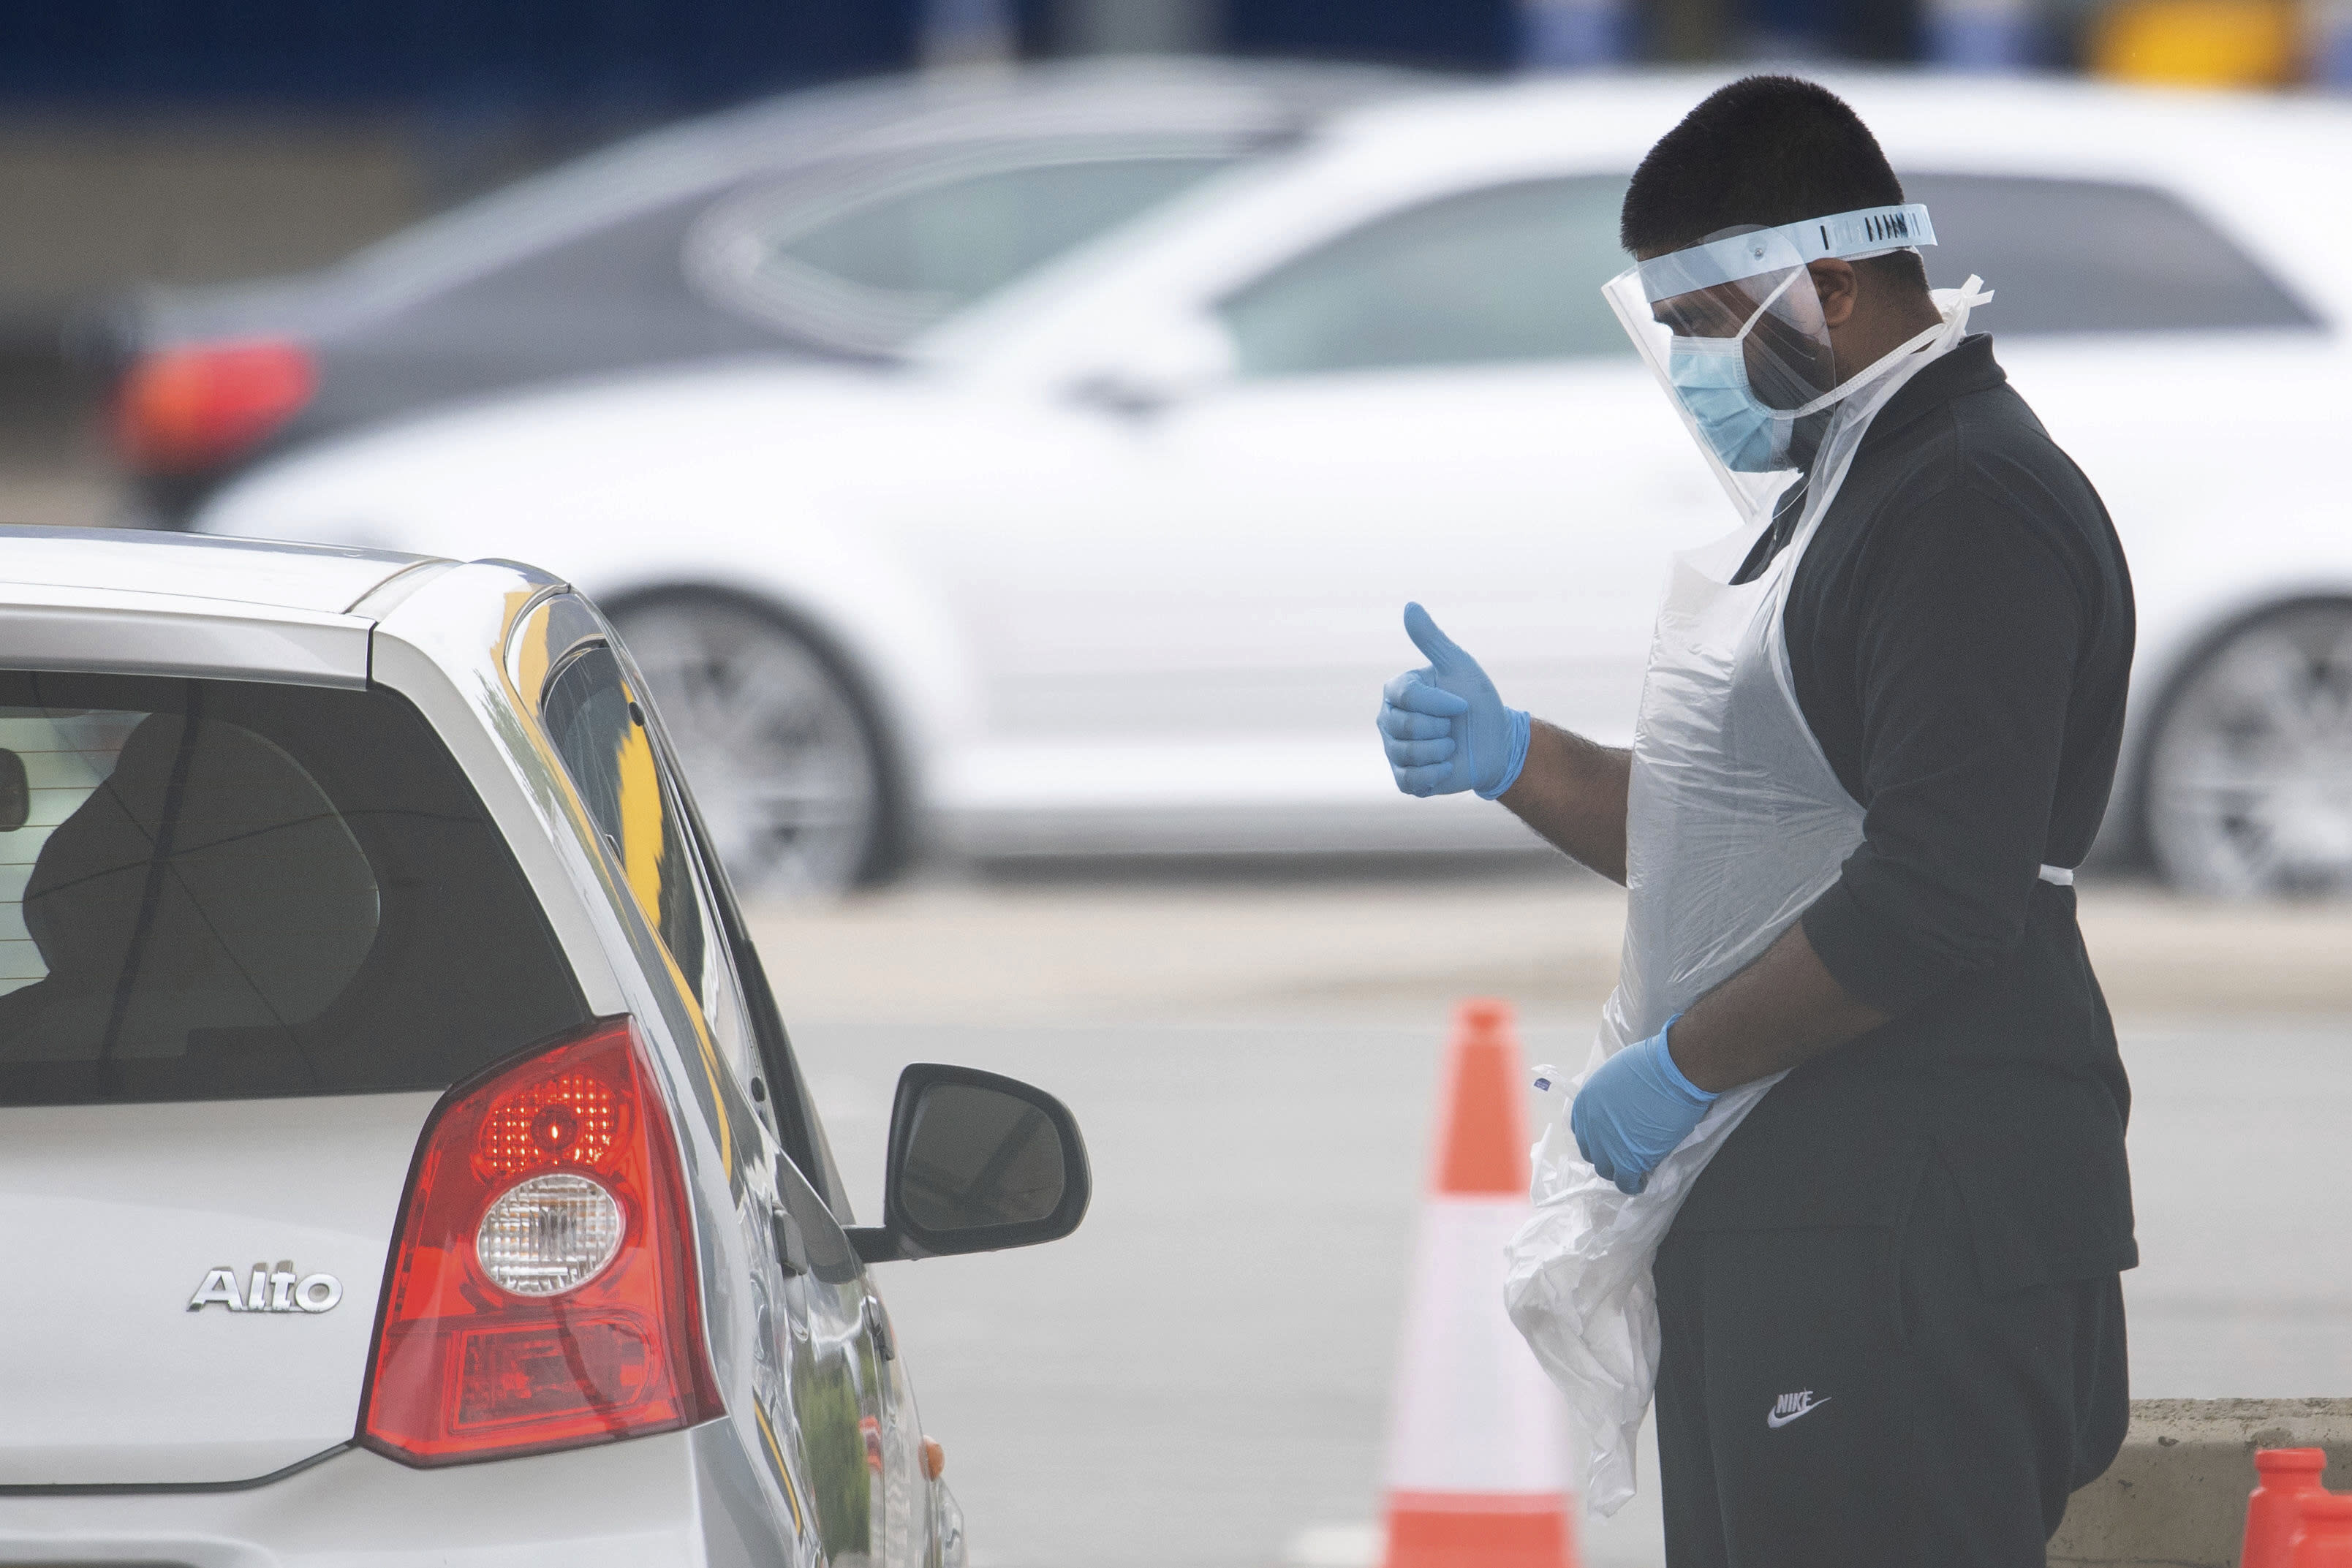 A tester, wearing a mask to protect against coronavirus, gestures to a driver at a drive through coronavirus testing site at IKEA in Wembley, north London, Thursday April 30, 2020. (Dominic Lipinski/PA via AP)